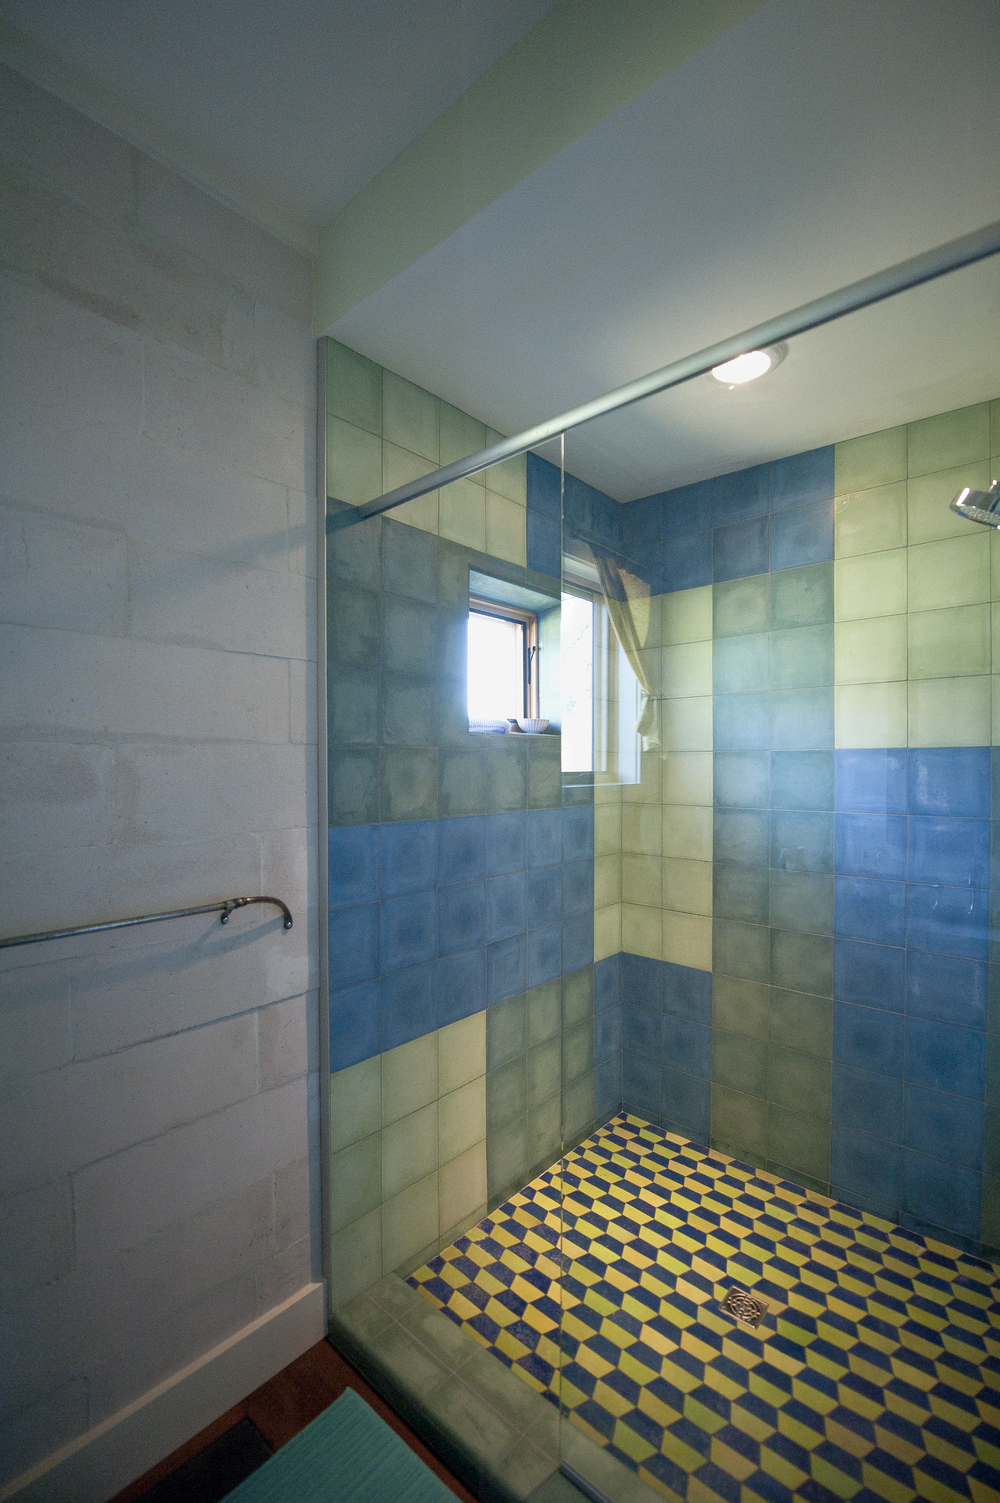 bathroom-shower-tile-detail.jpg